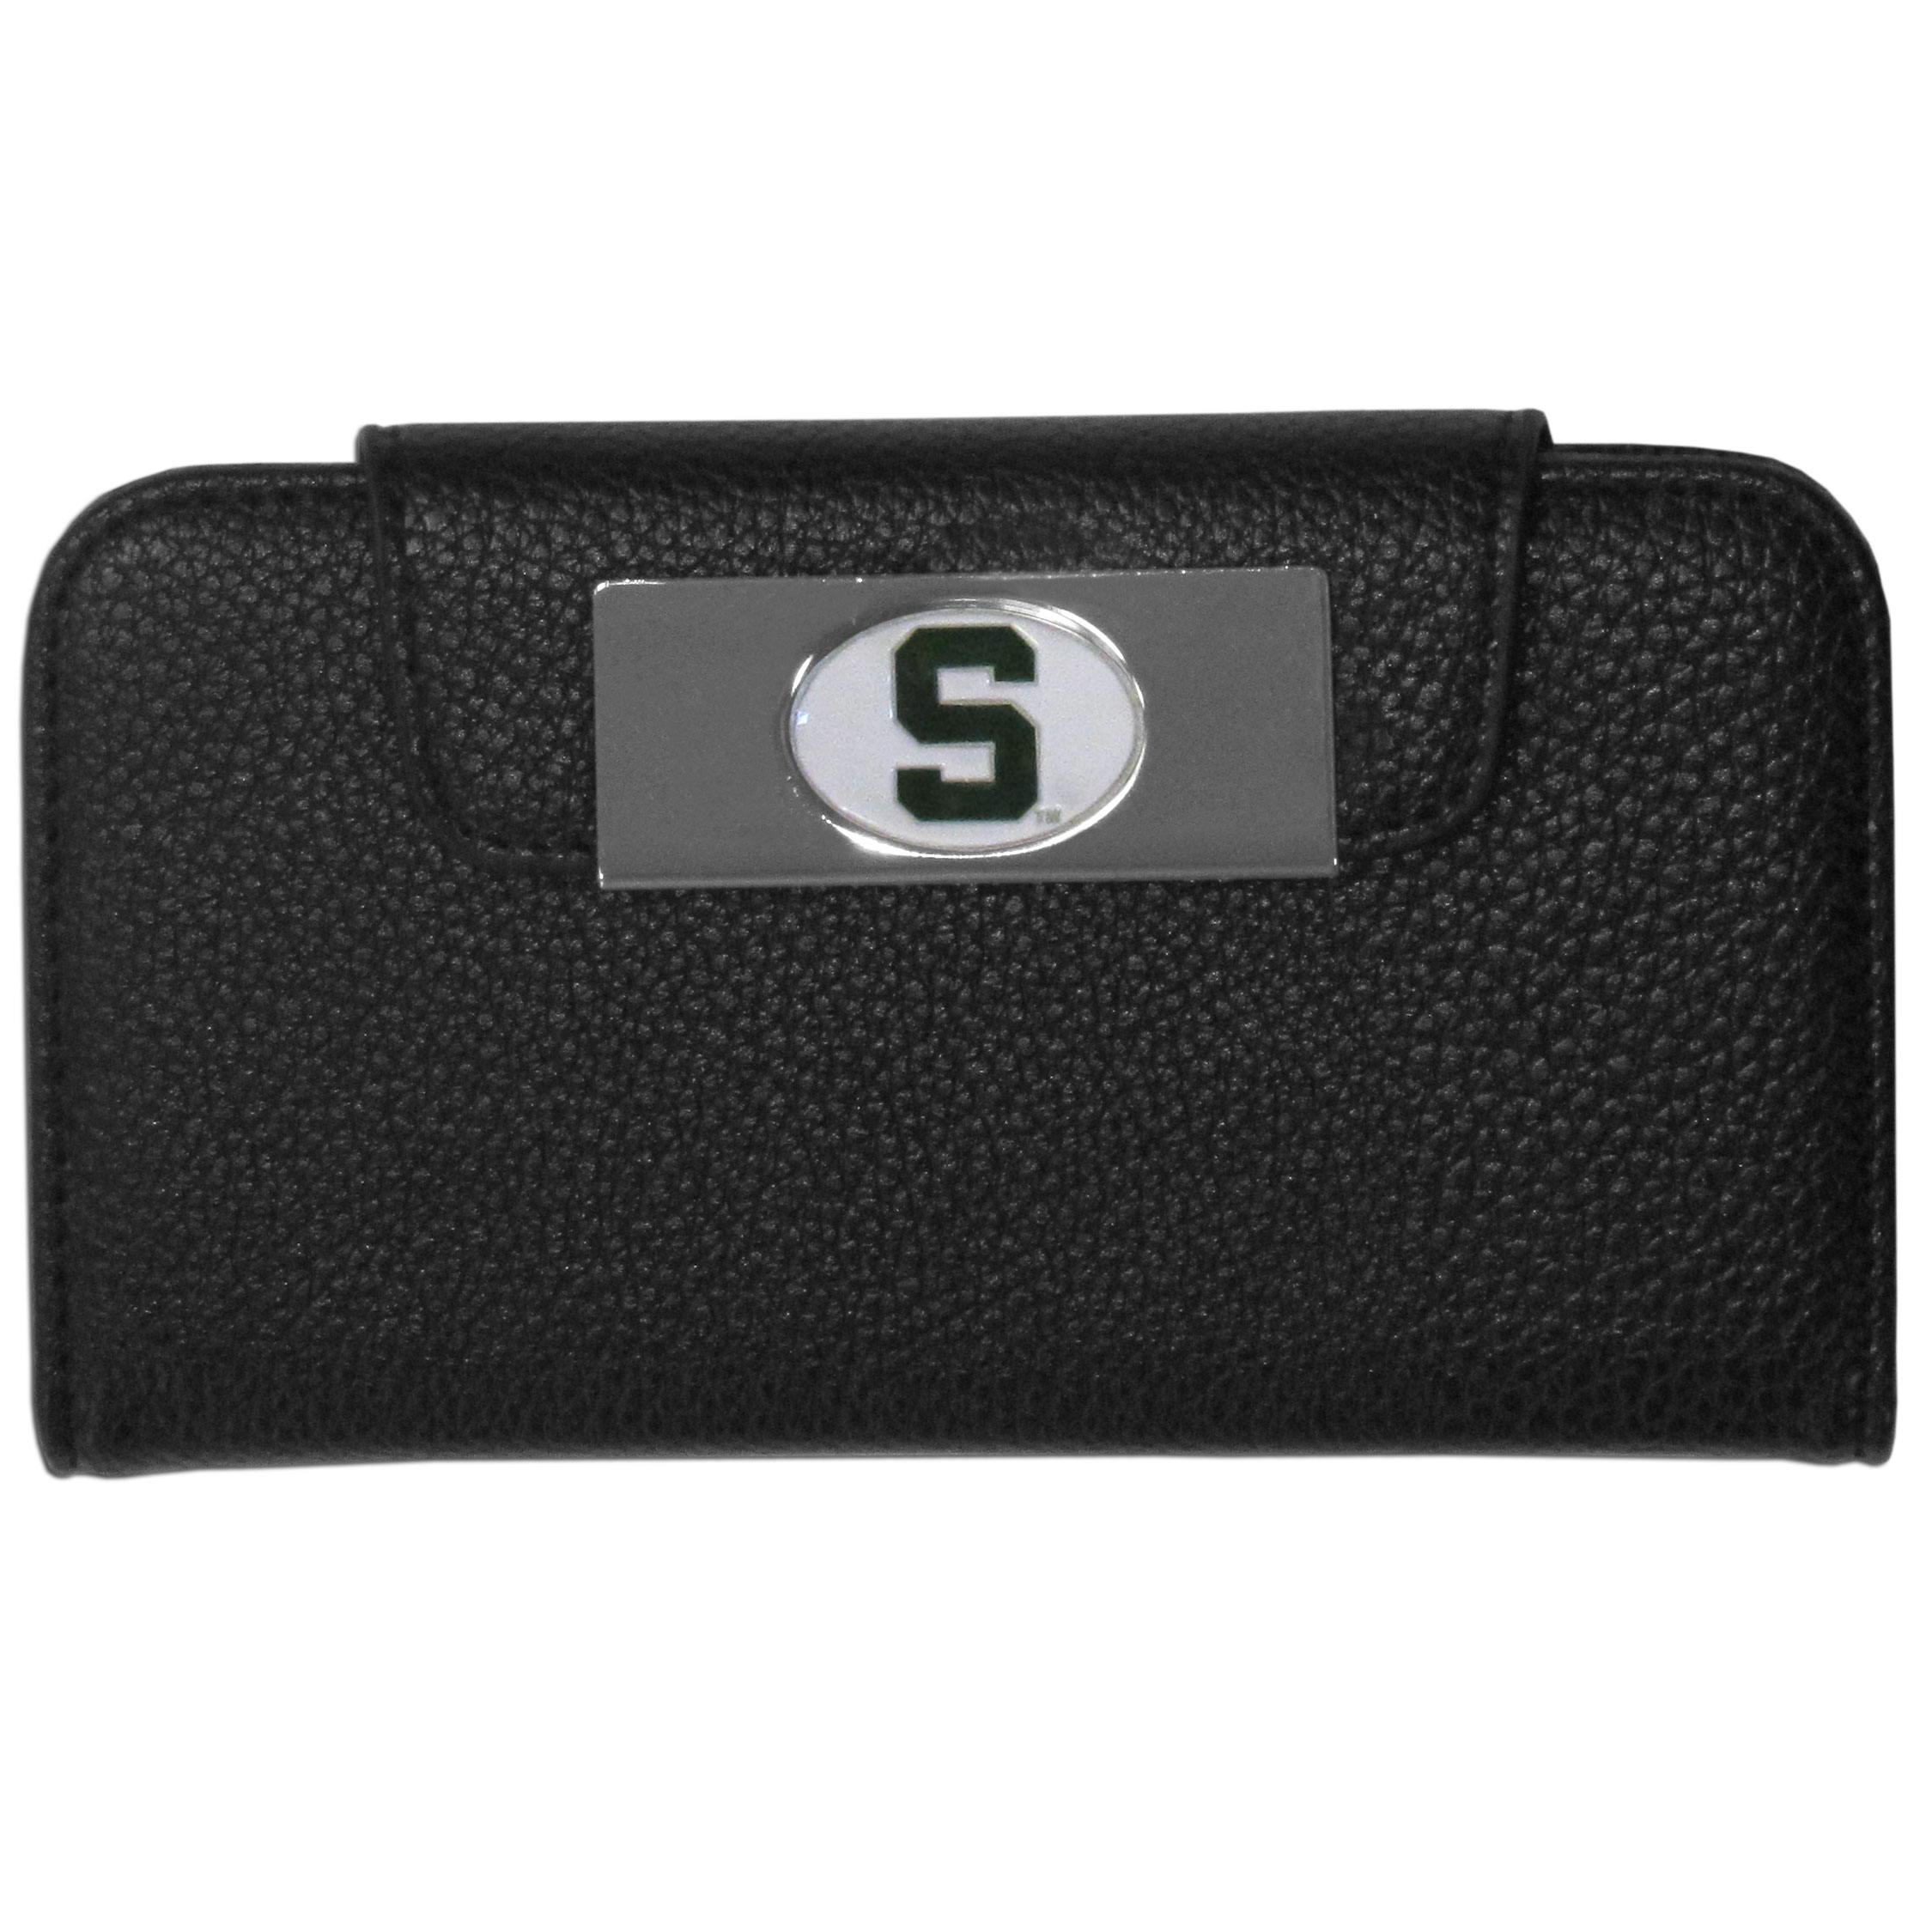 Michigan St. Spartans iPhone 5/5S Wallet Case - This new & wildly popular case is ideal for those who like to travel light! The stylish case has an inner hard shell that securely holds your phone while allowing complete access to the phone's functionality. The flip cover has slots for credit cards, business cards and identification. The magnetic flip cover has a metal Michigan St. Spartans emblem on a high polish chrome backing. Fits the iPhone 5/5S